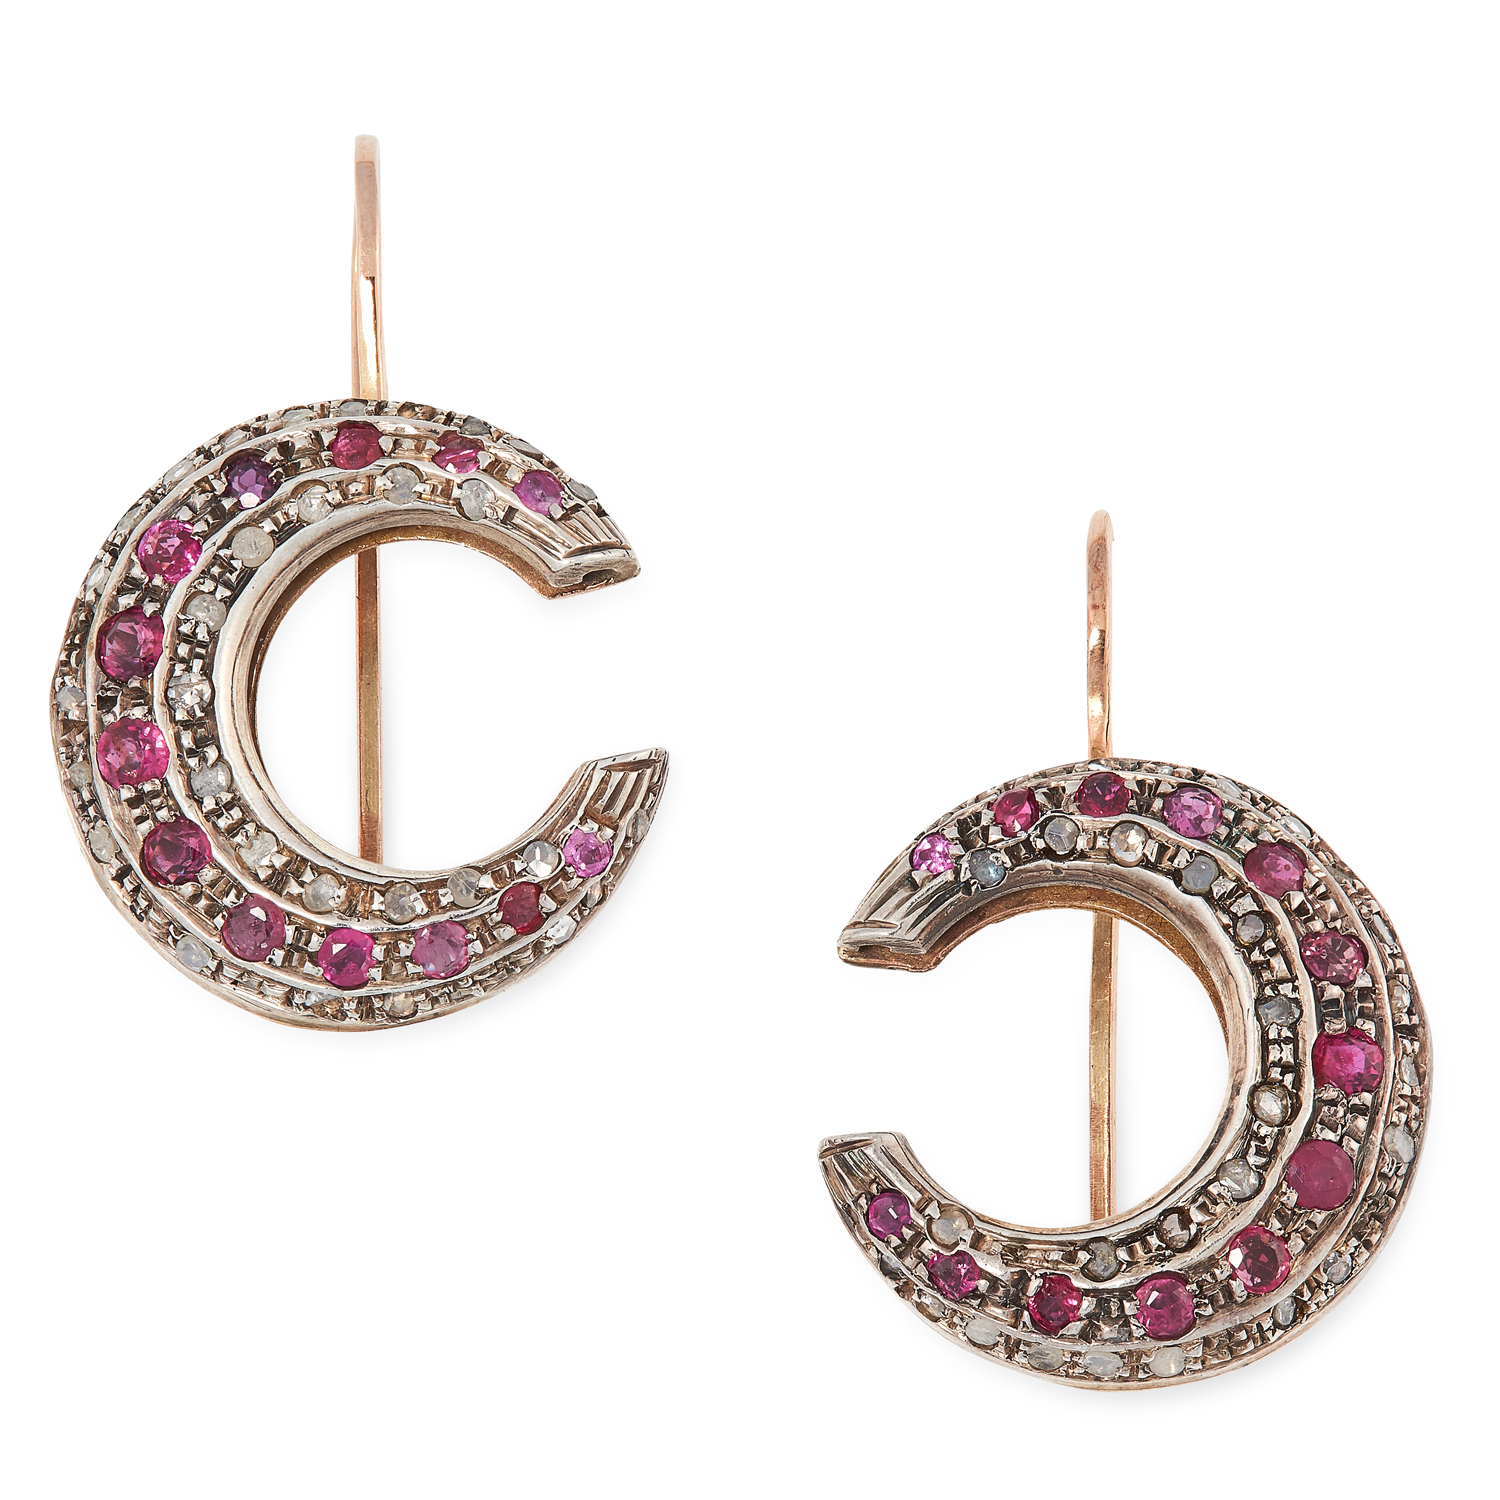 A PAIR OF ANTIQUE CRESCENT MOON EARRINGS set with round cut rubies and rose cut diamonds, 3.5cm, 8.